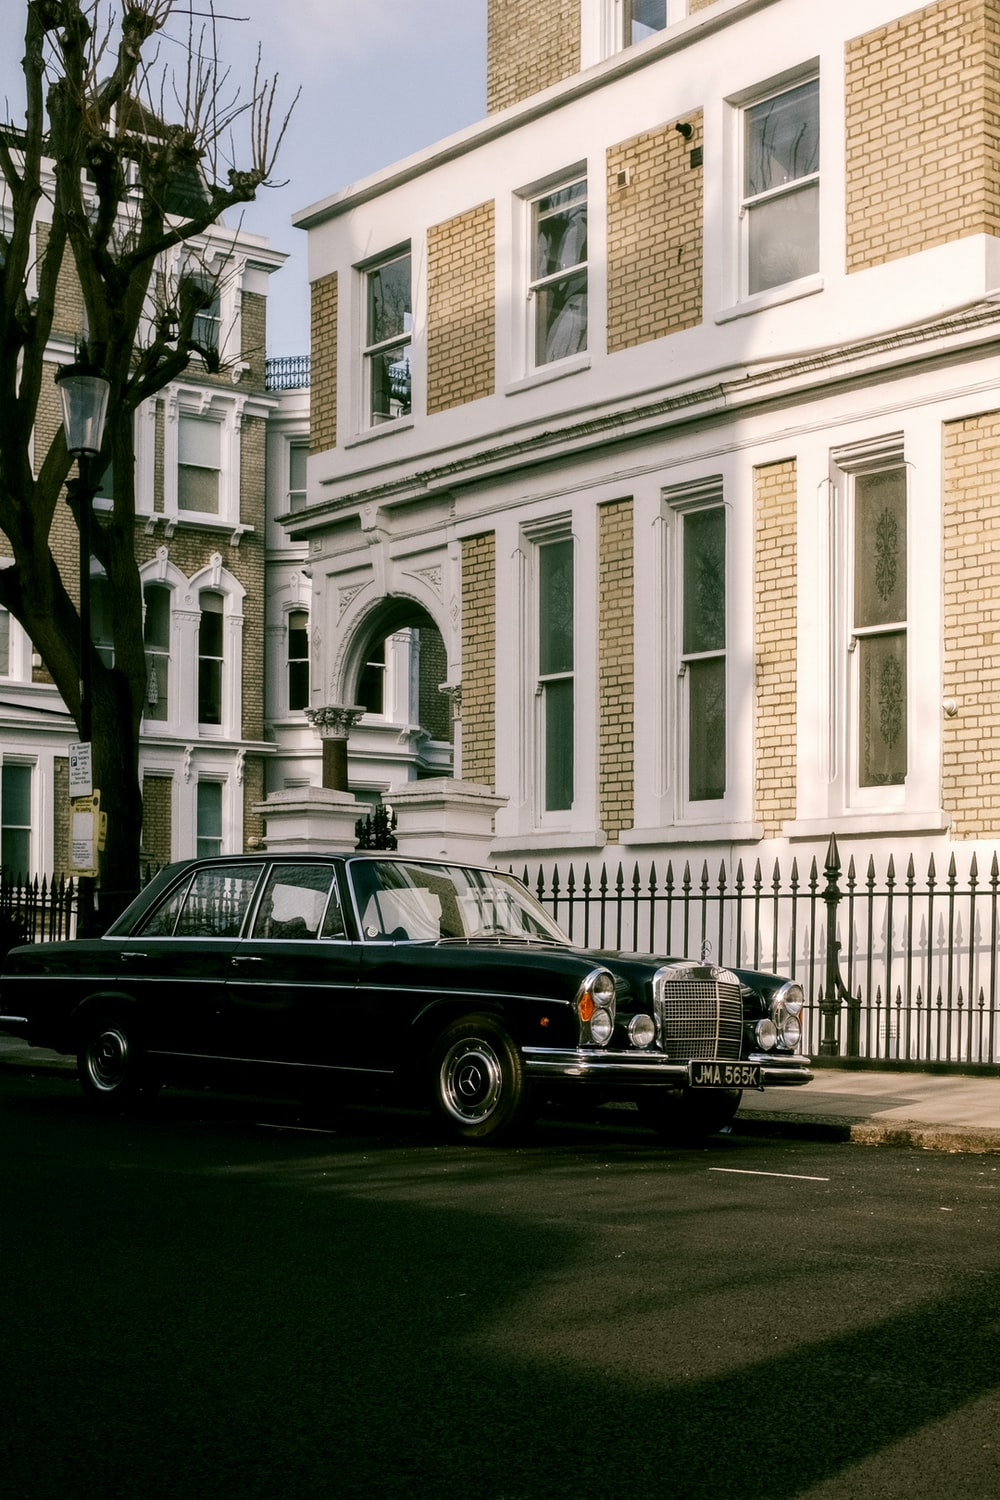 black car parked in front of white building